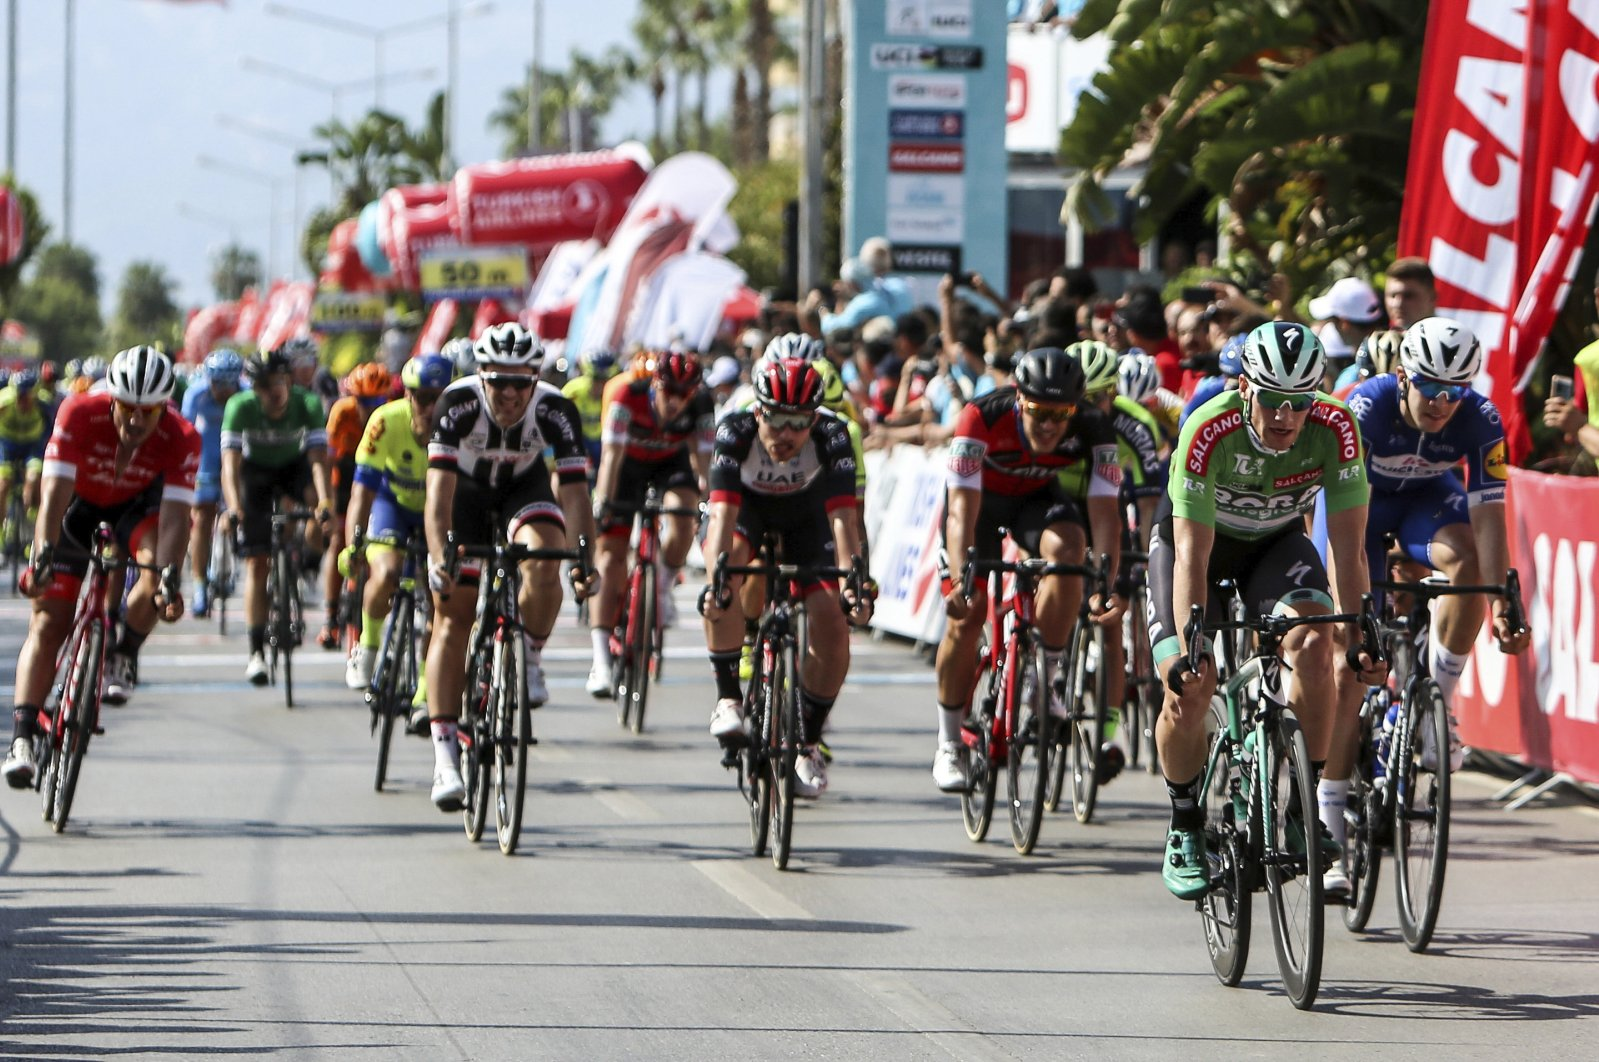 In this undated photo, cyclists compete in the Presidential Cycling Tour in Antalya, Turkey. (DHA Photo)